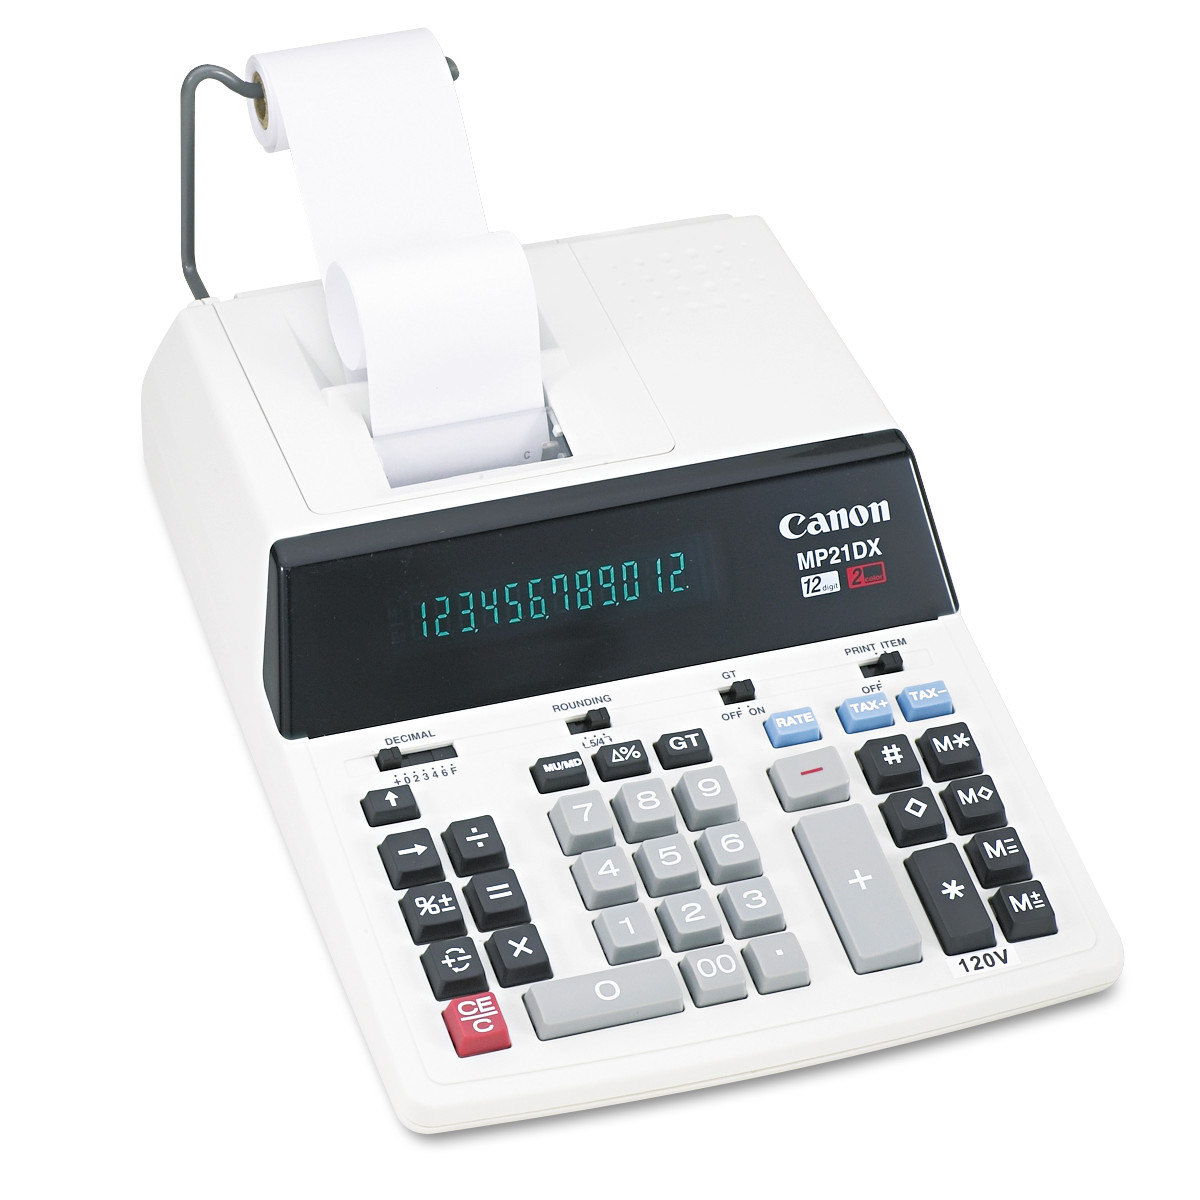 Canon MP21DX 12-Digit Ribbon Printing Calculator, Black Red Print, 3.5 Lines Sec by CANON USA, INC.